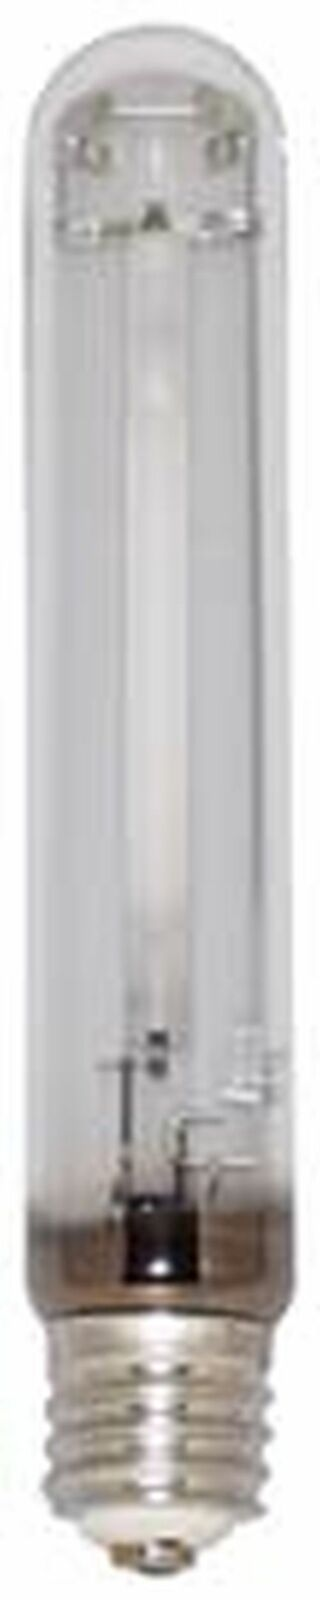 REPLACEMENT BULB FOR METAL HALIDE MT250BH 250W